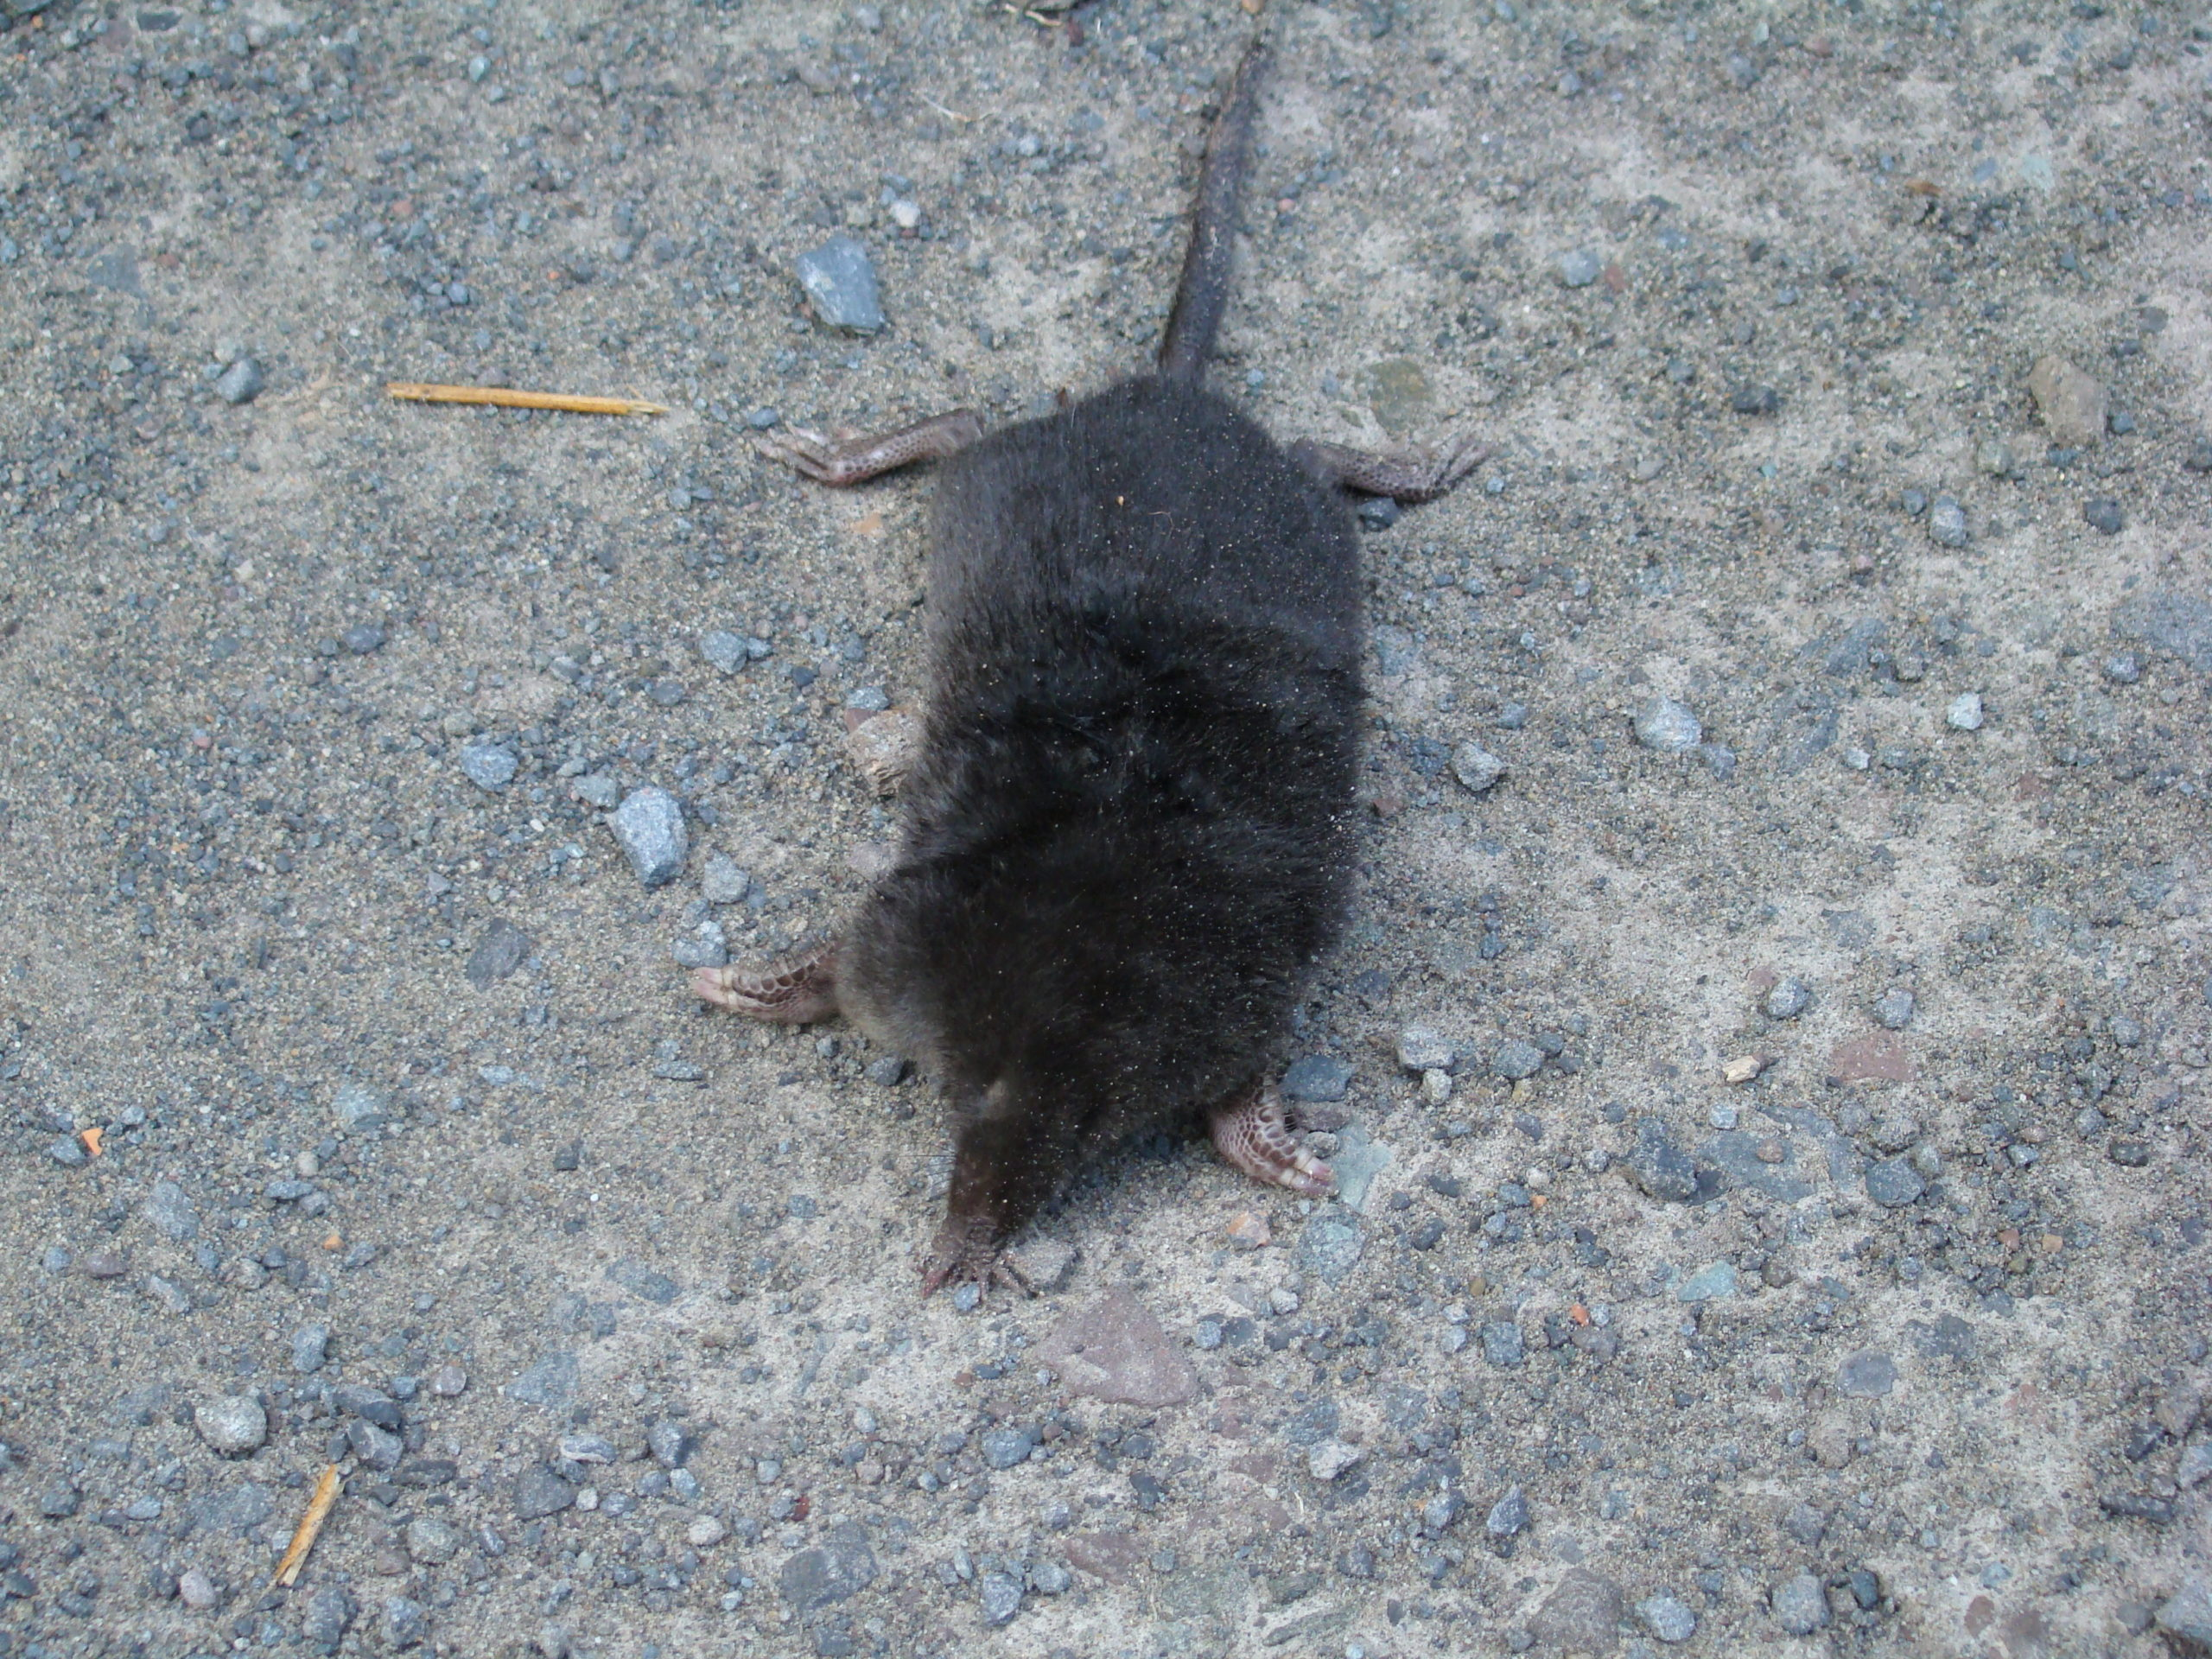 This is a mole. Note the feet designed for digging and tunneling, the lack of visible eyes and the long and narrow snout used for locating grubs, worms and other soil insects.